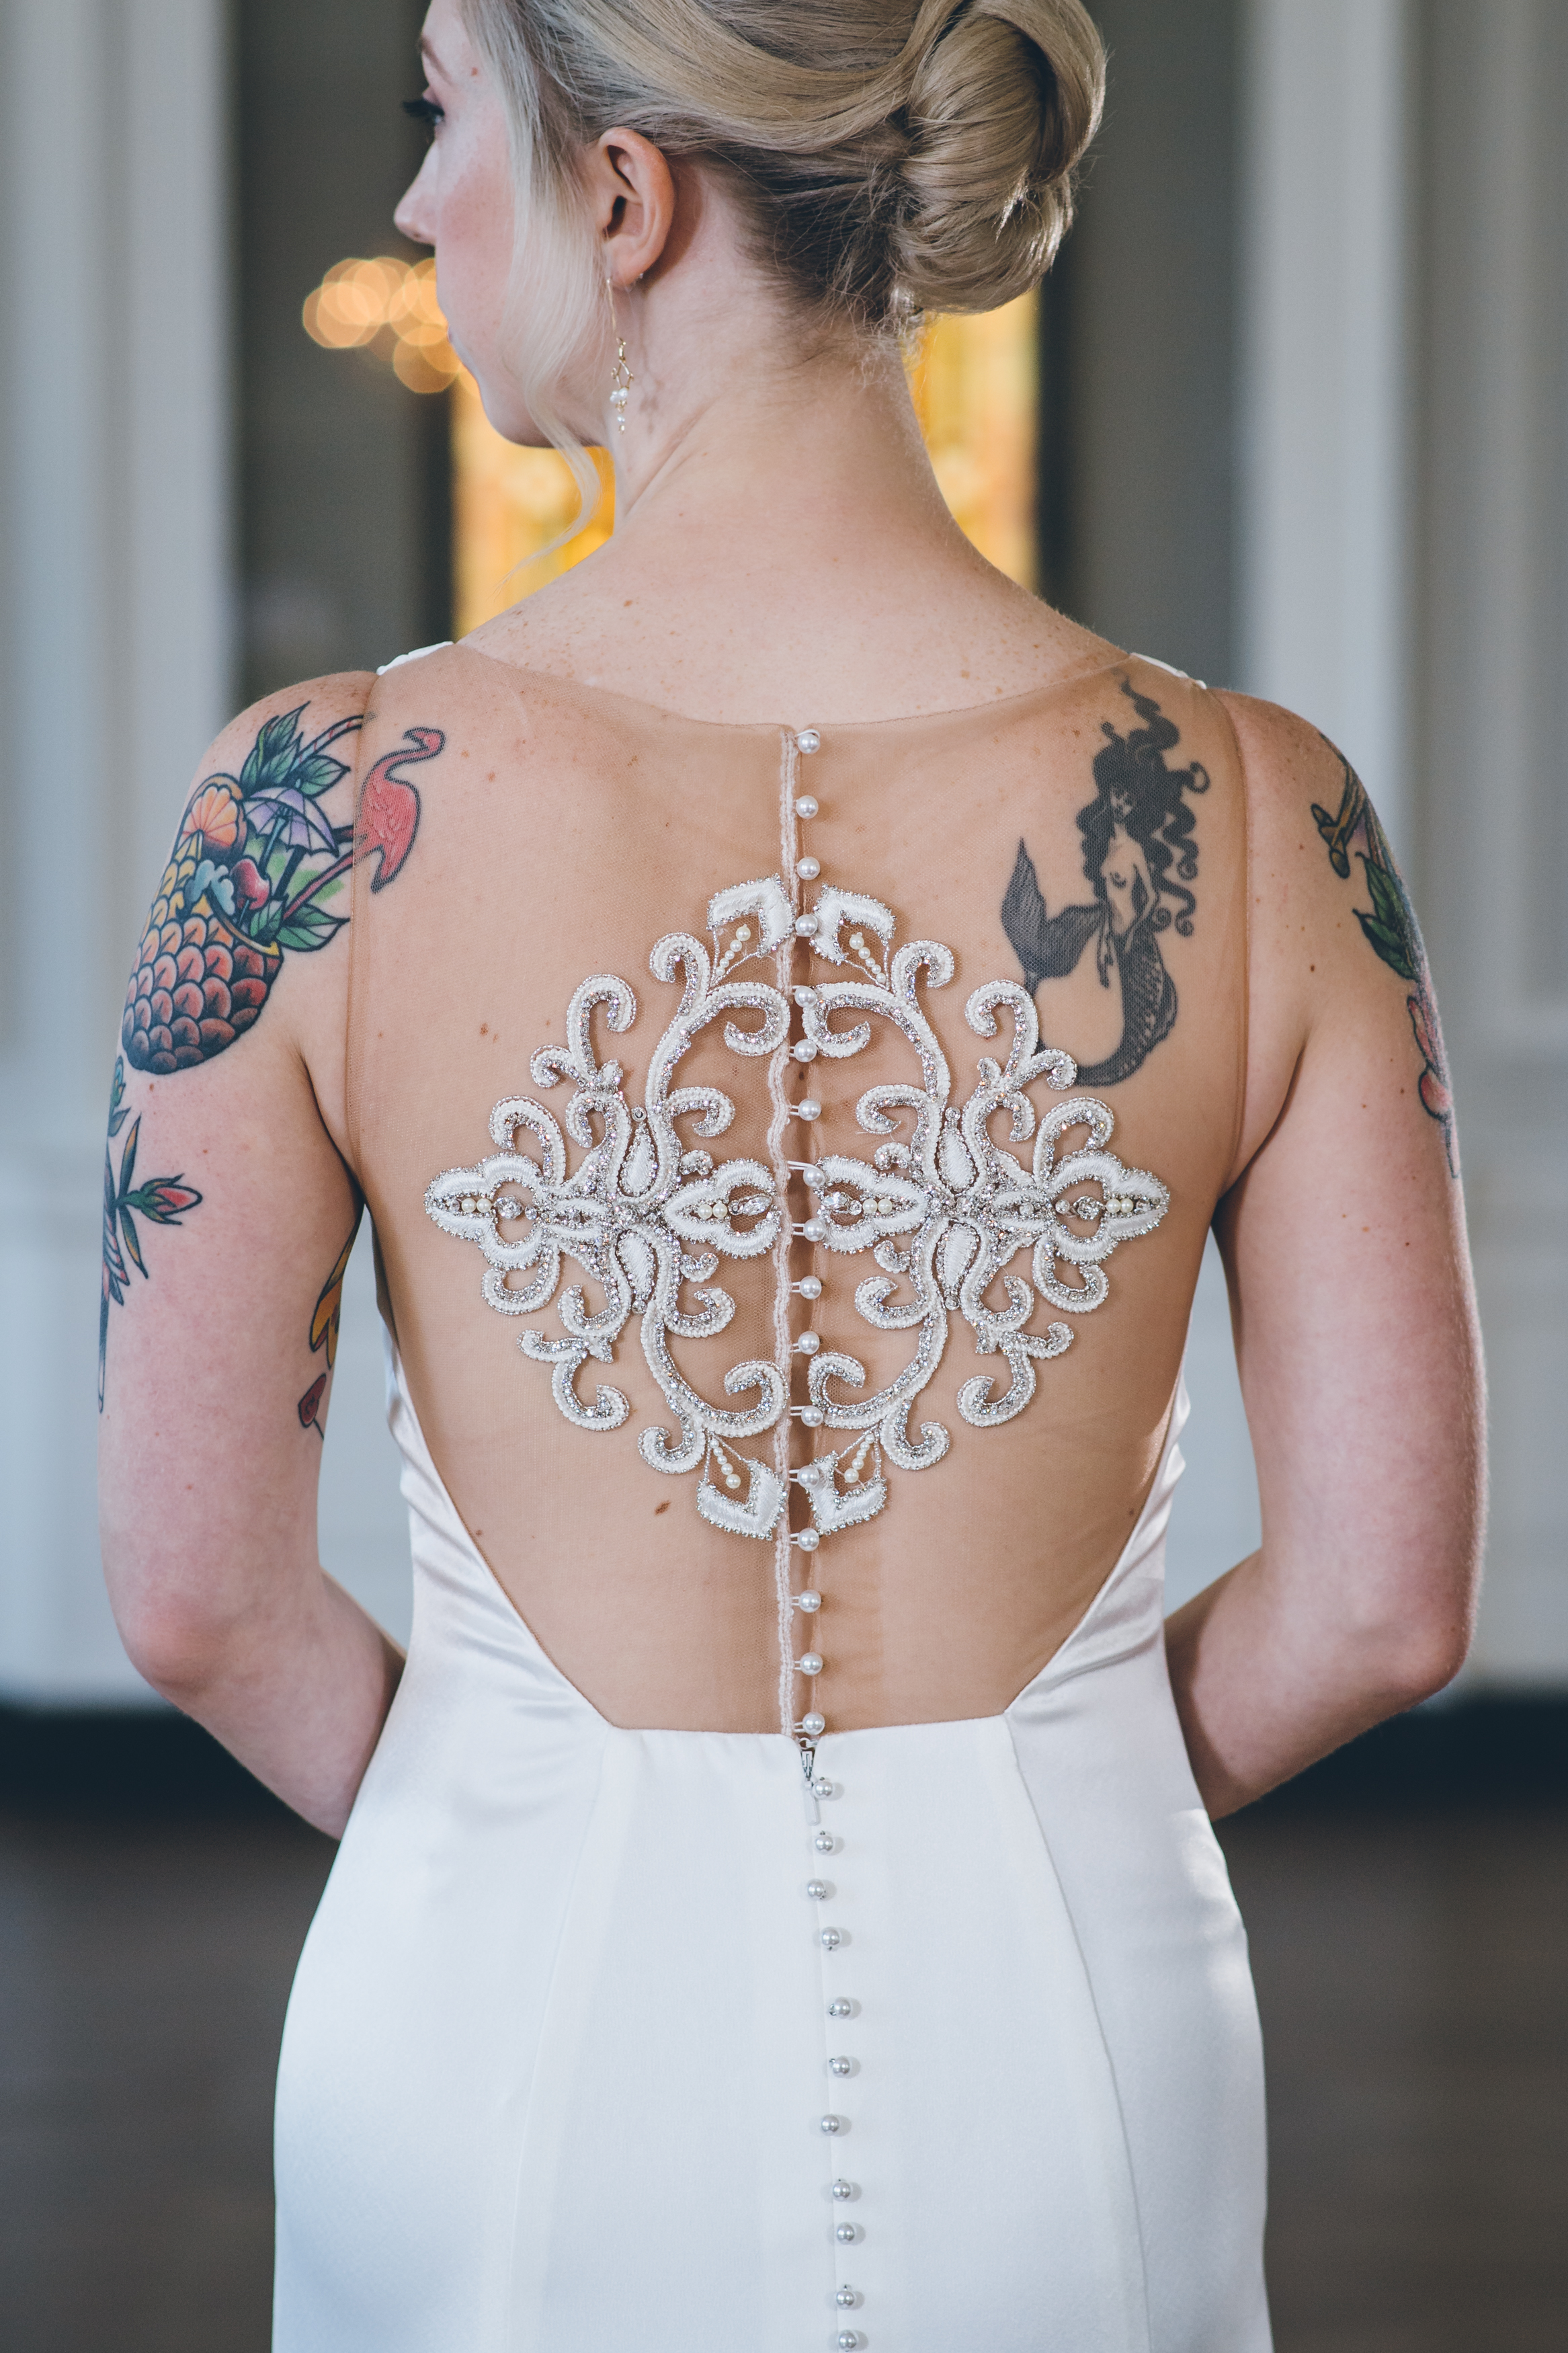 Tattoo Bride Chicago Wedding Ed and Aileen Photography